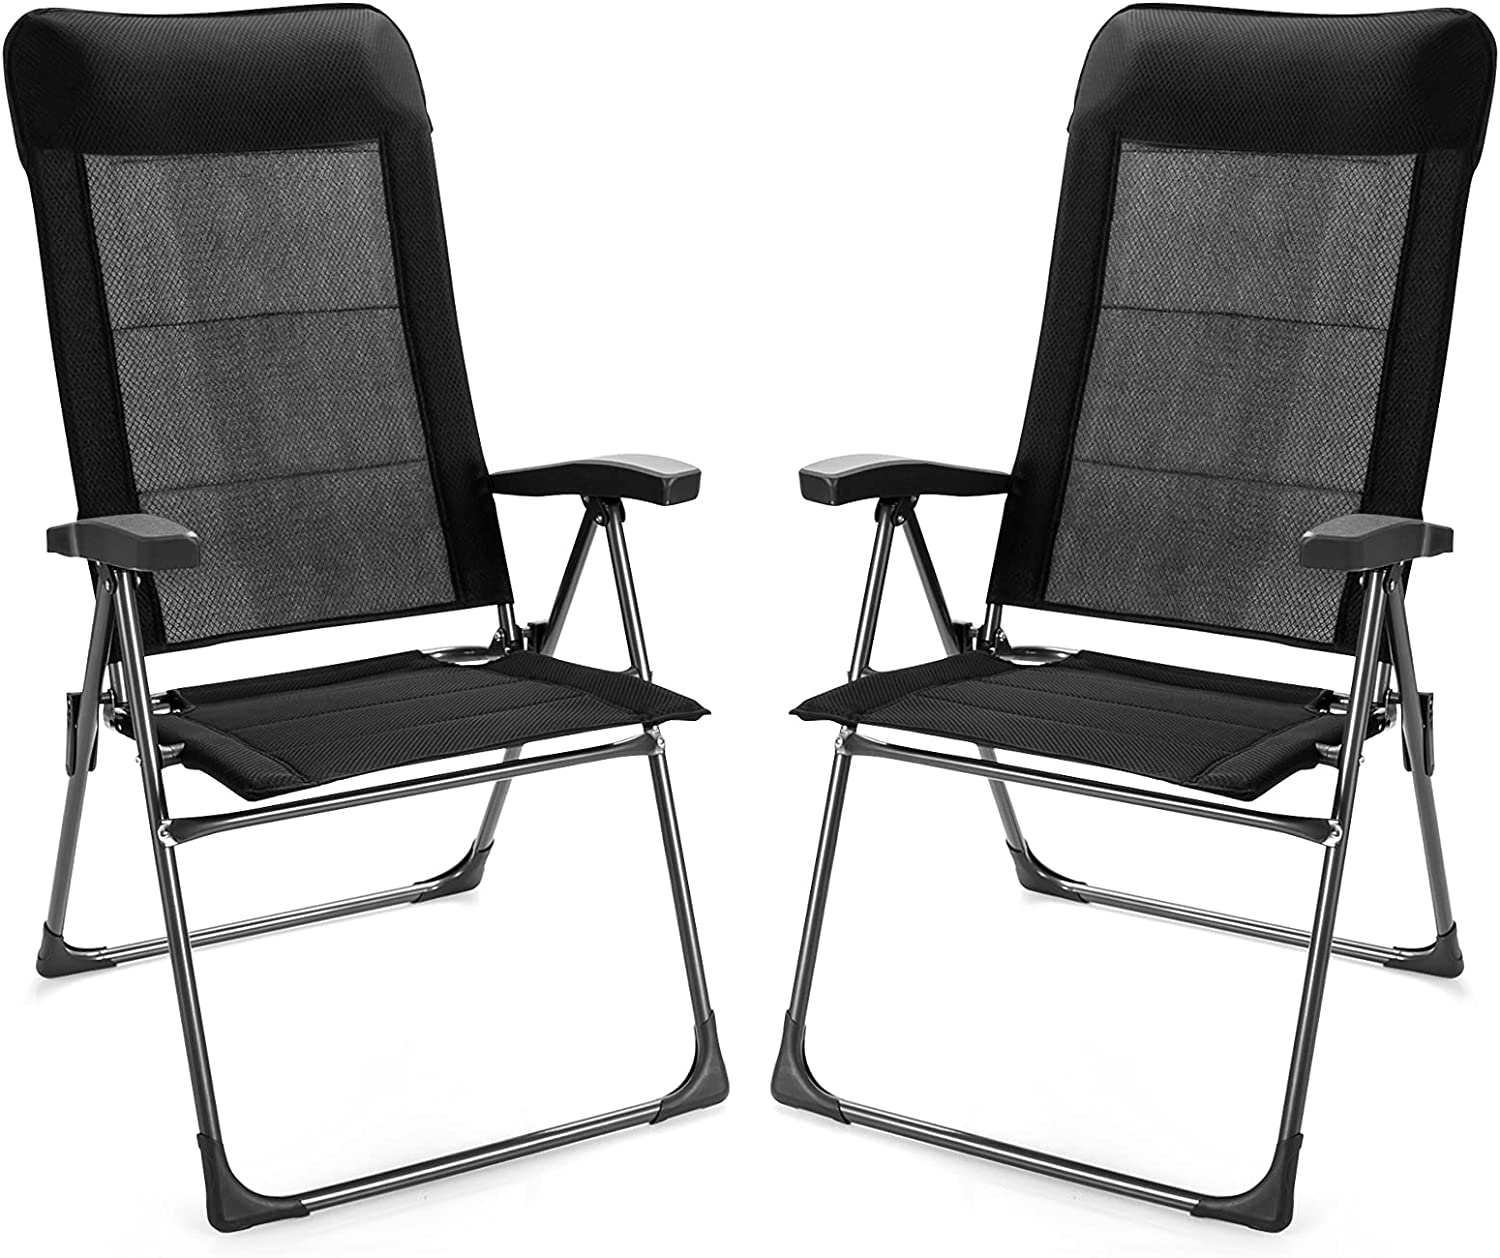 Giantex Set of 2 Max 74% OFF New color Patio Folding Outd Dining Chairs